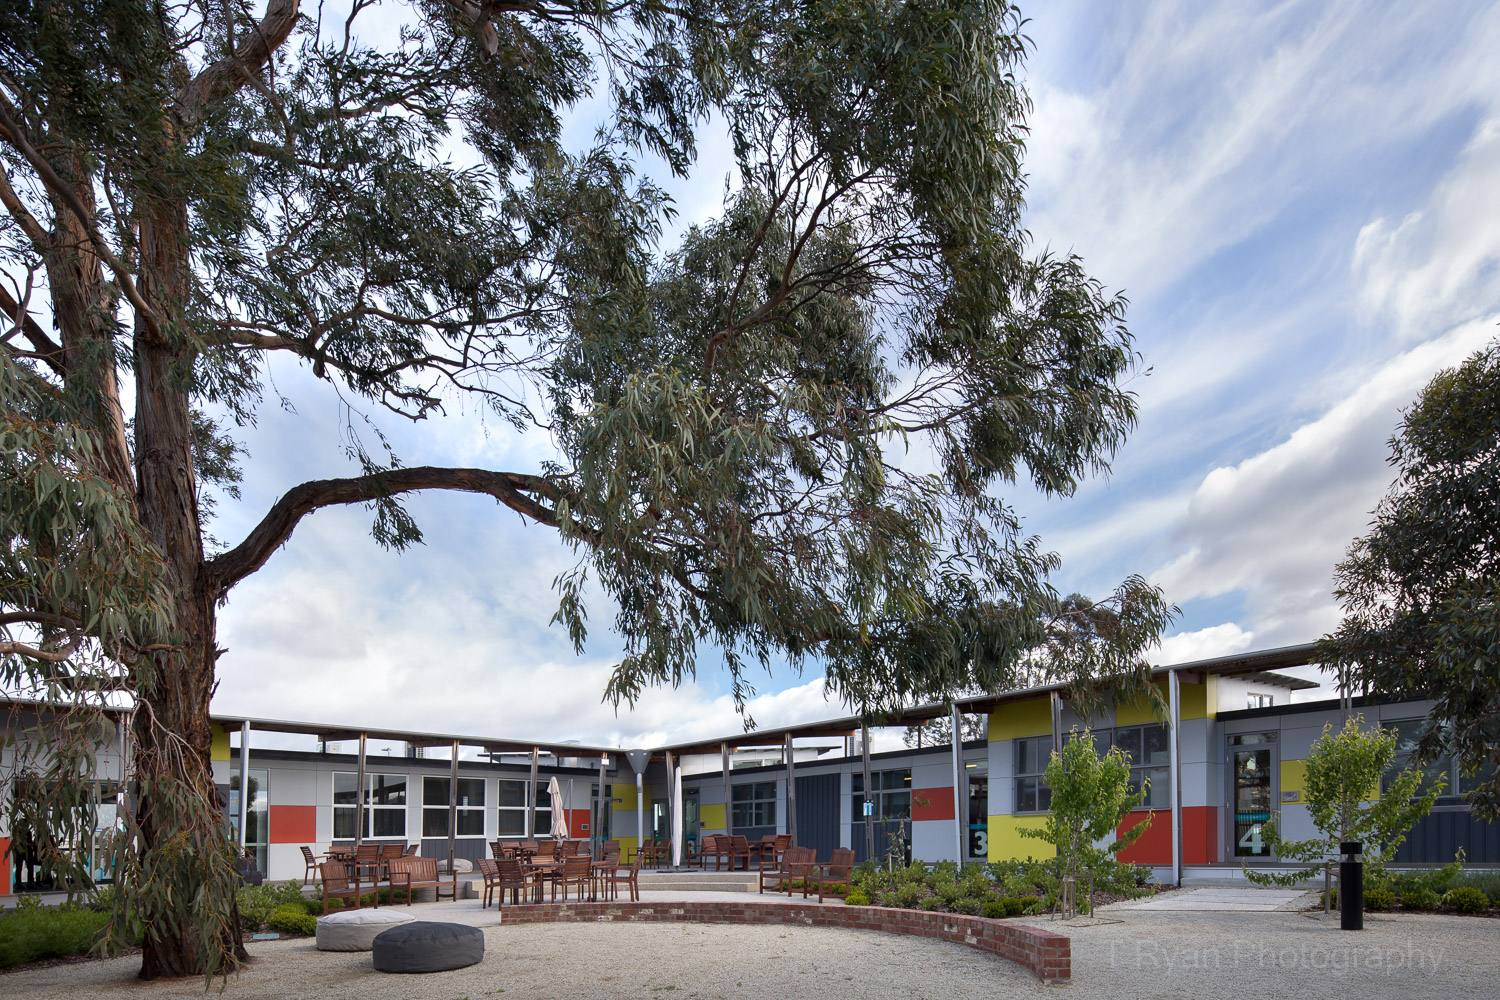 Professional Learning Institute, Glenorchy - Morrison & Breytenbach Architects